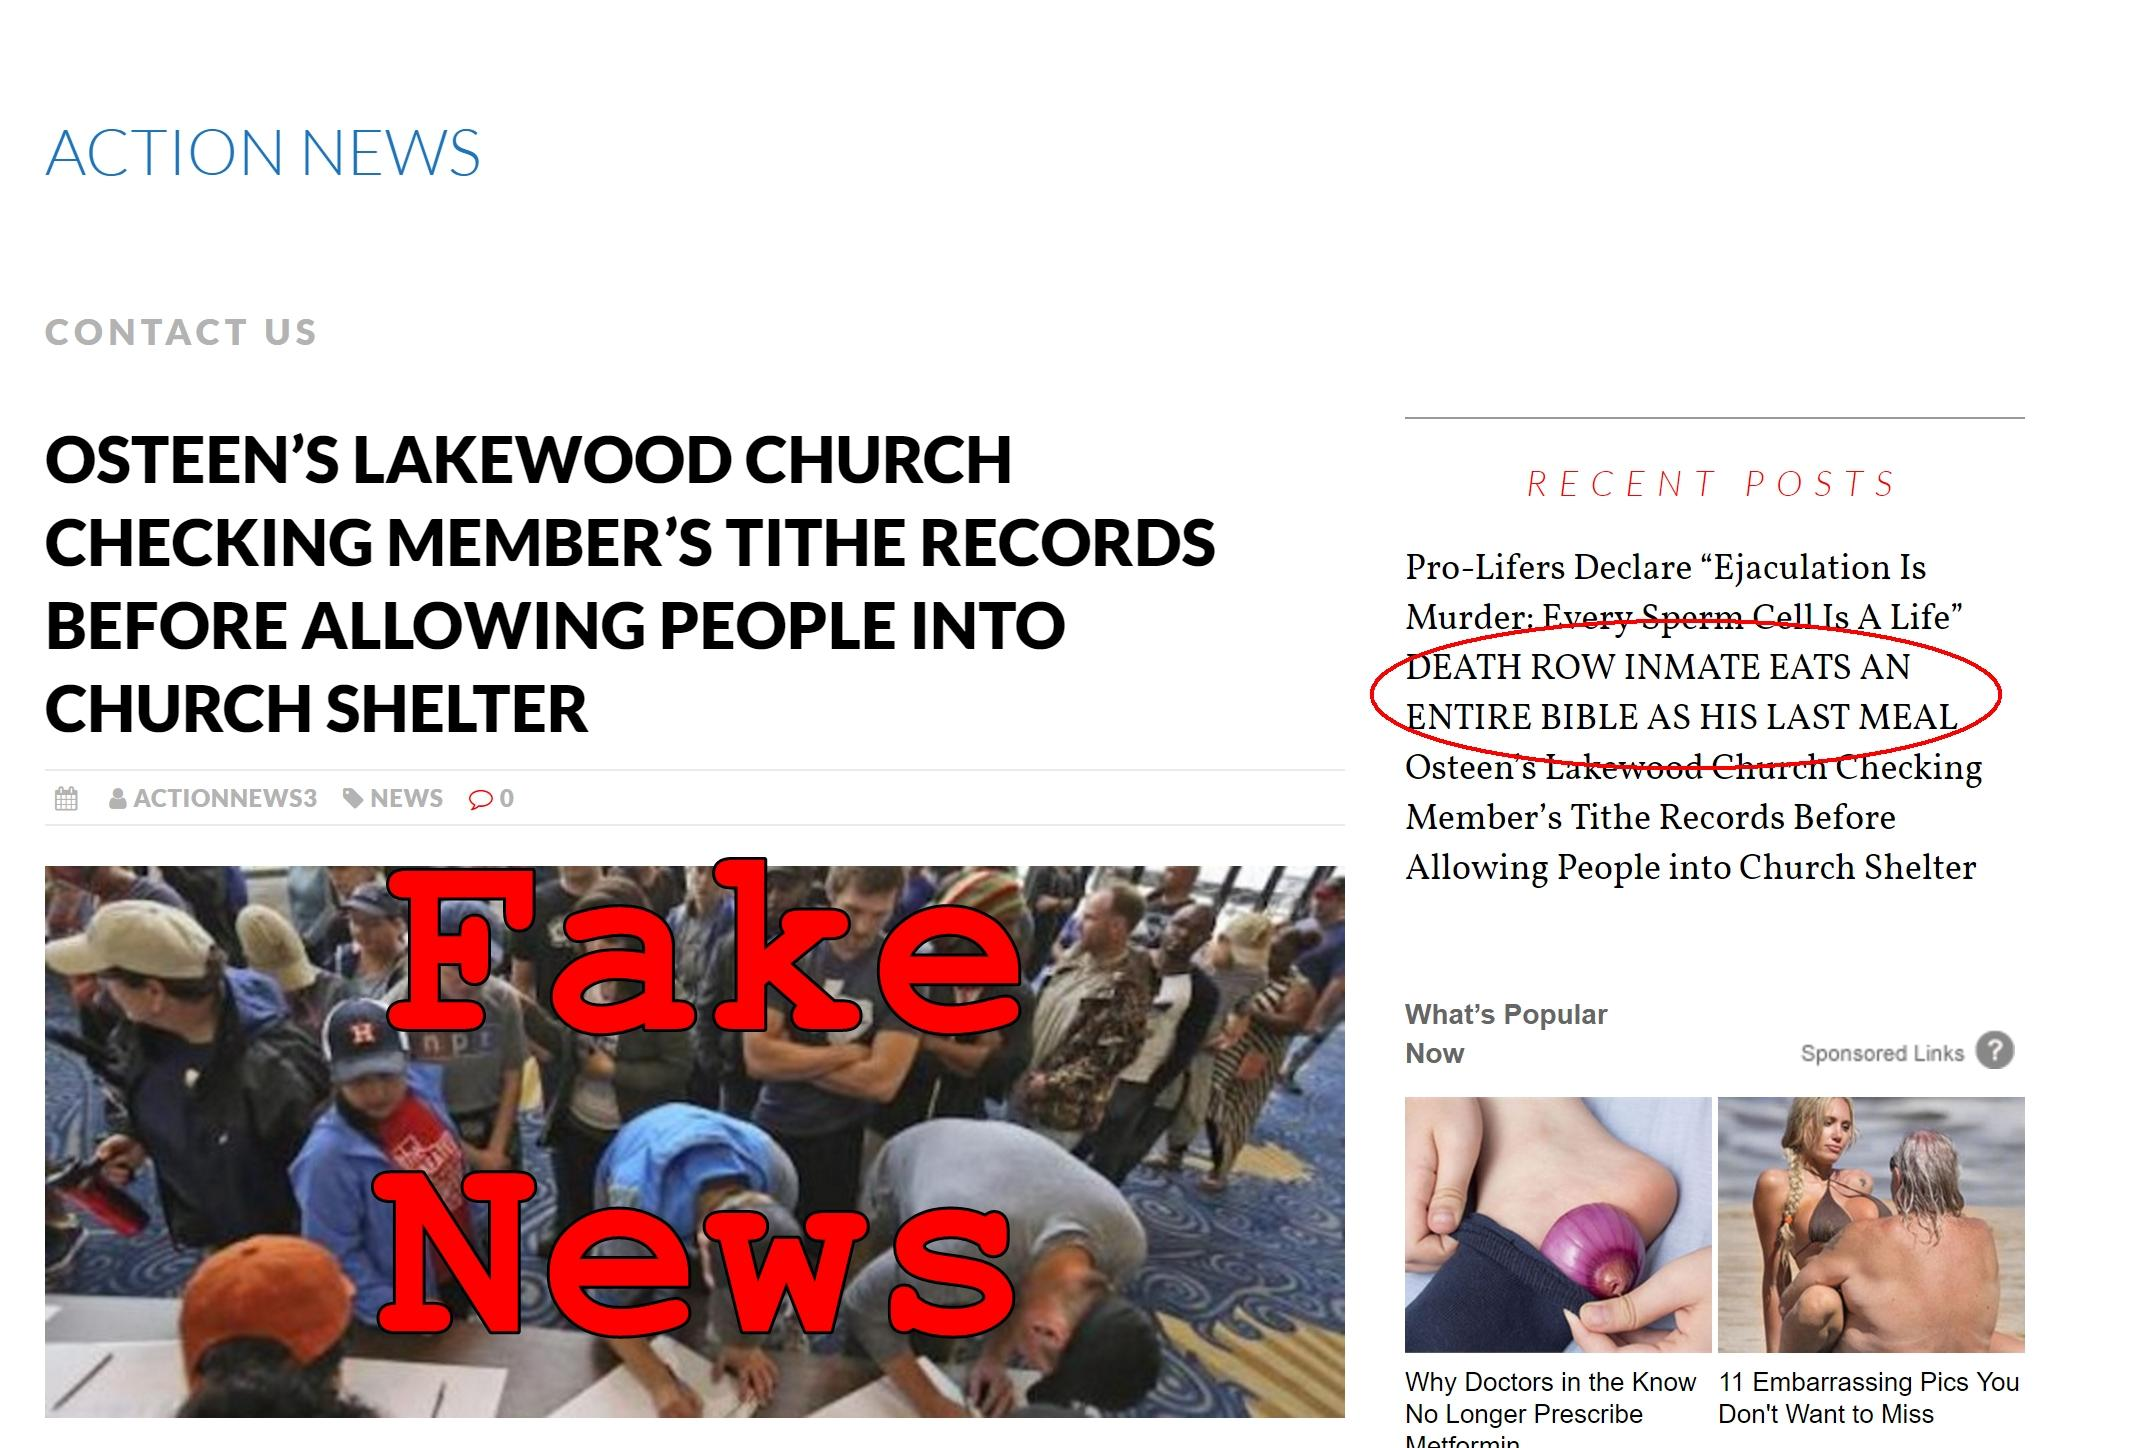 Fake News: Osteen's Lakewood Church NOT Checking Member's Tithe Records Before Allowing People into Church Shelter